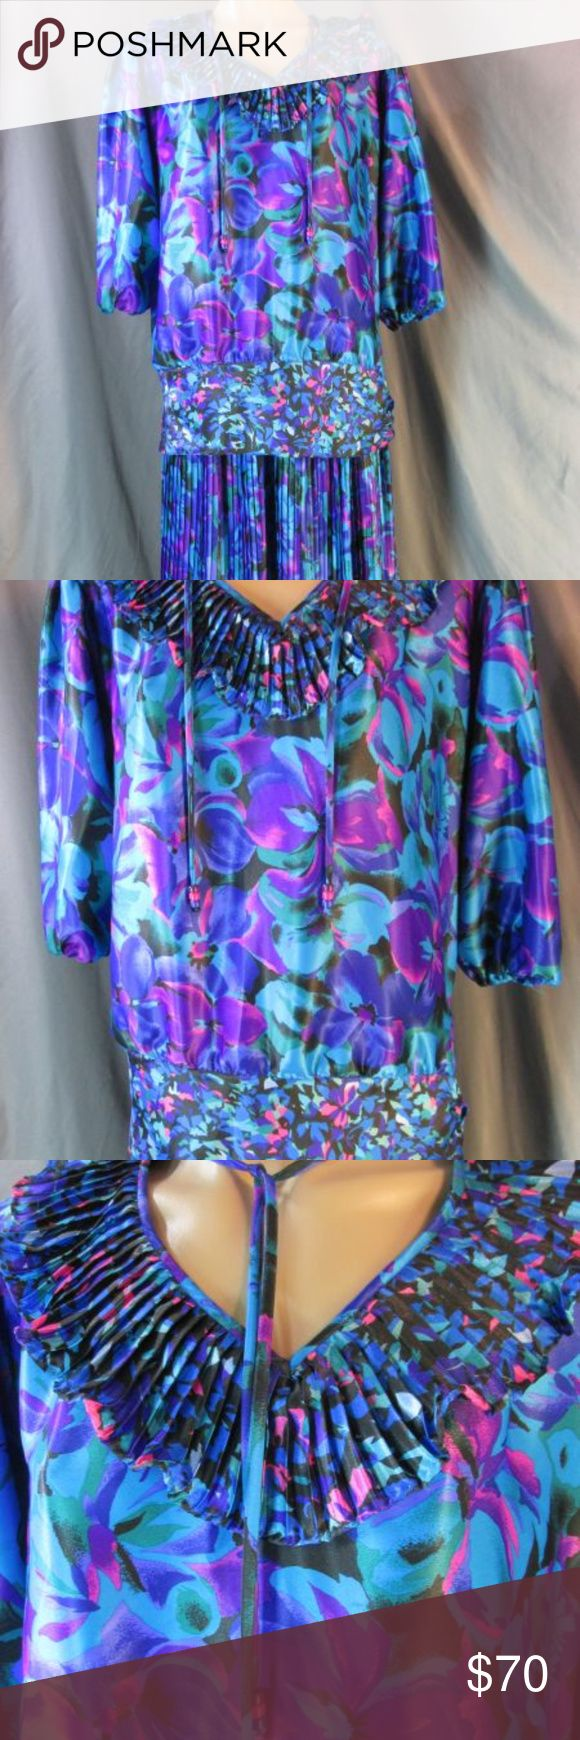 Vintage Assorti S Freis Pleated Ruffle Dress Set M Vintage 80's Assorti for Susan Freis. Bold blue purple pink green floral print. Silky polyester with a nice sheen. Bloused full cut top with pleated ruffle on the V neckline, attached tie with bead trim. Dropped waist with same fabric panel and side tie. gathered at shoulder with shoulder pads, 3/4 Sleeves with elastic end. Elastic waist skirt with narrow pleats to a lightly flared and lettuce ruffled edge finish. Made in the USA. Hand wash…